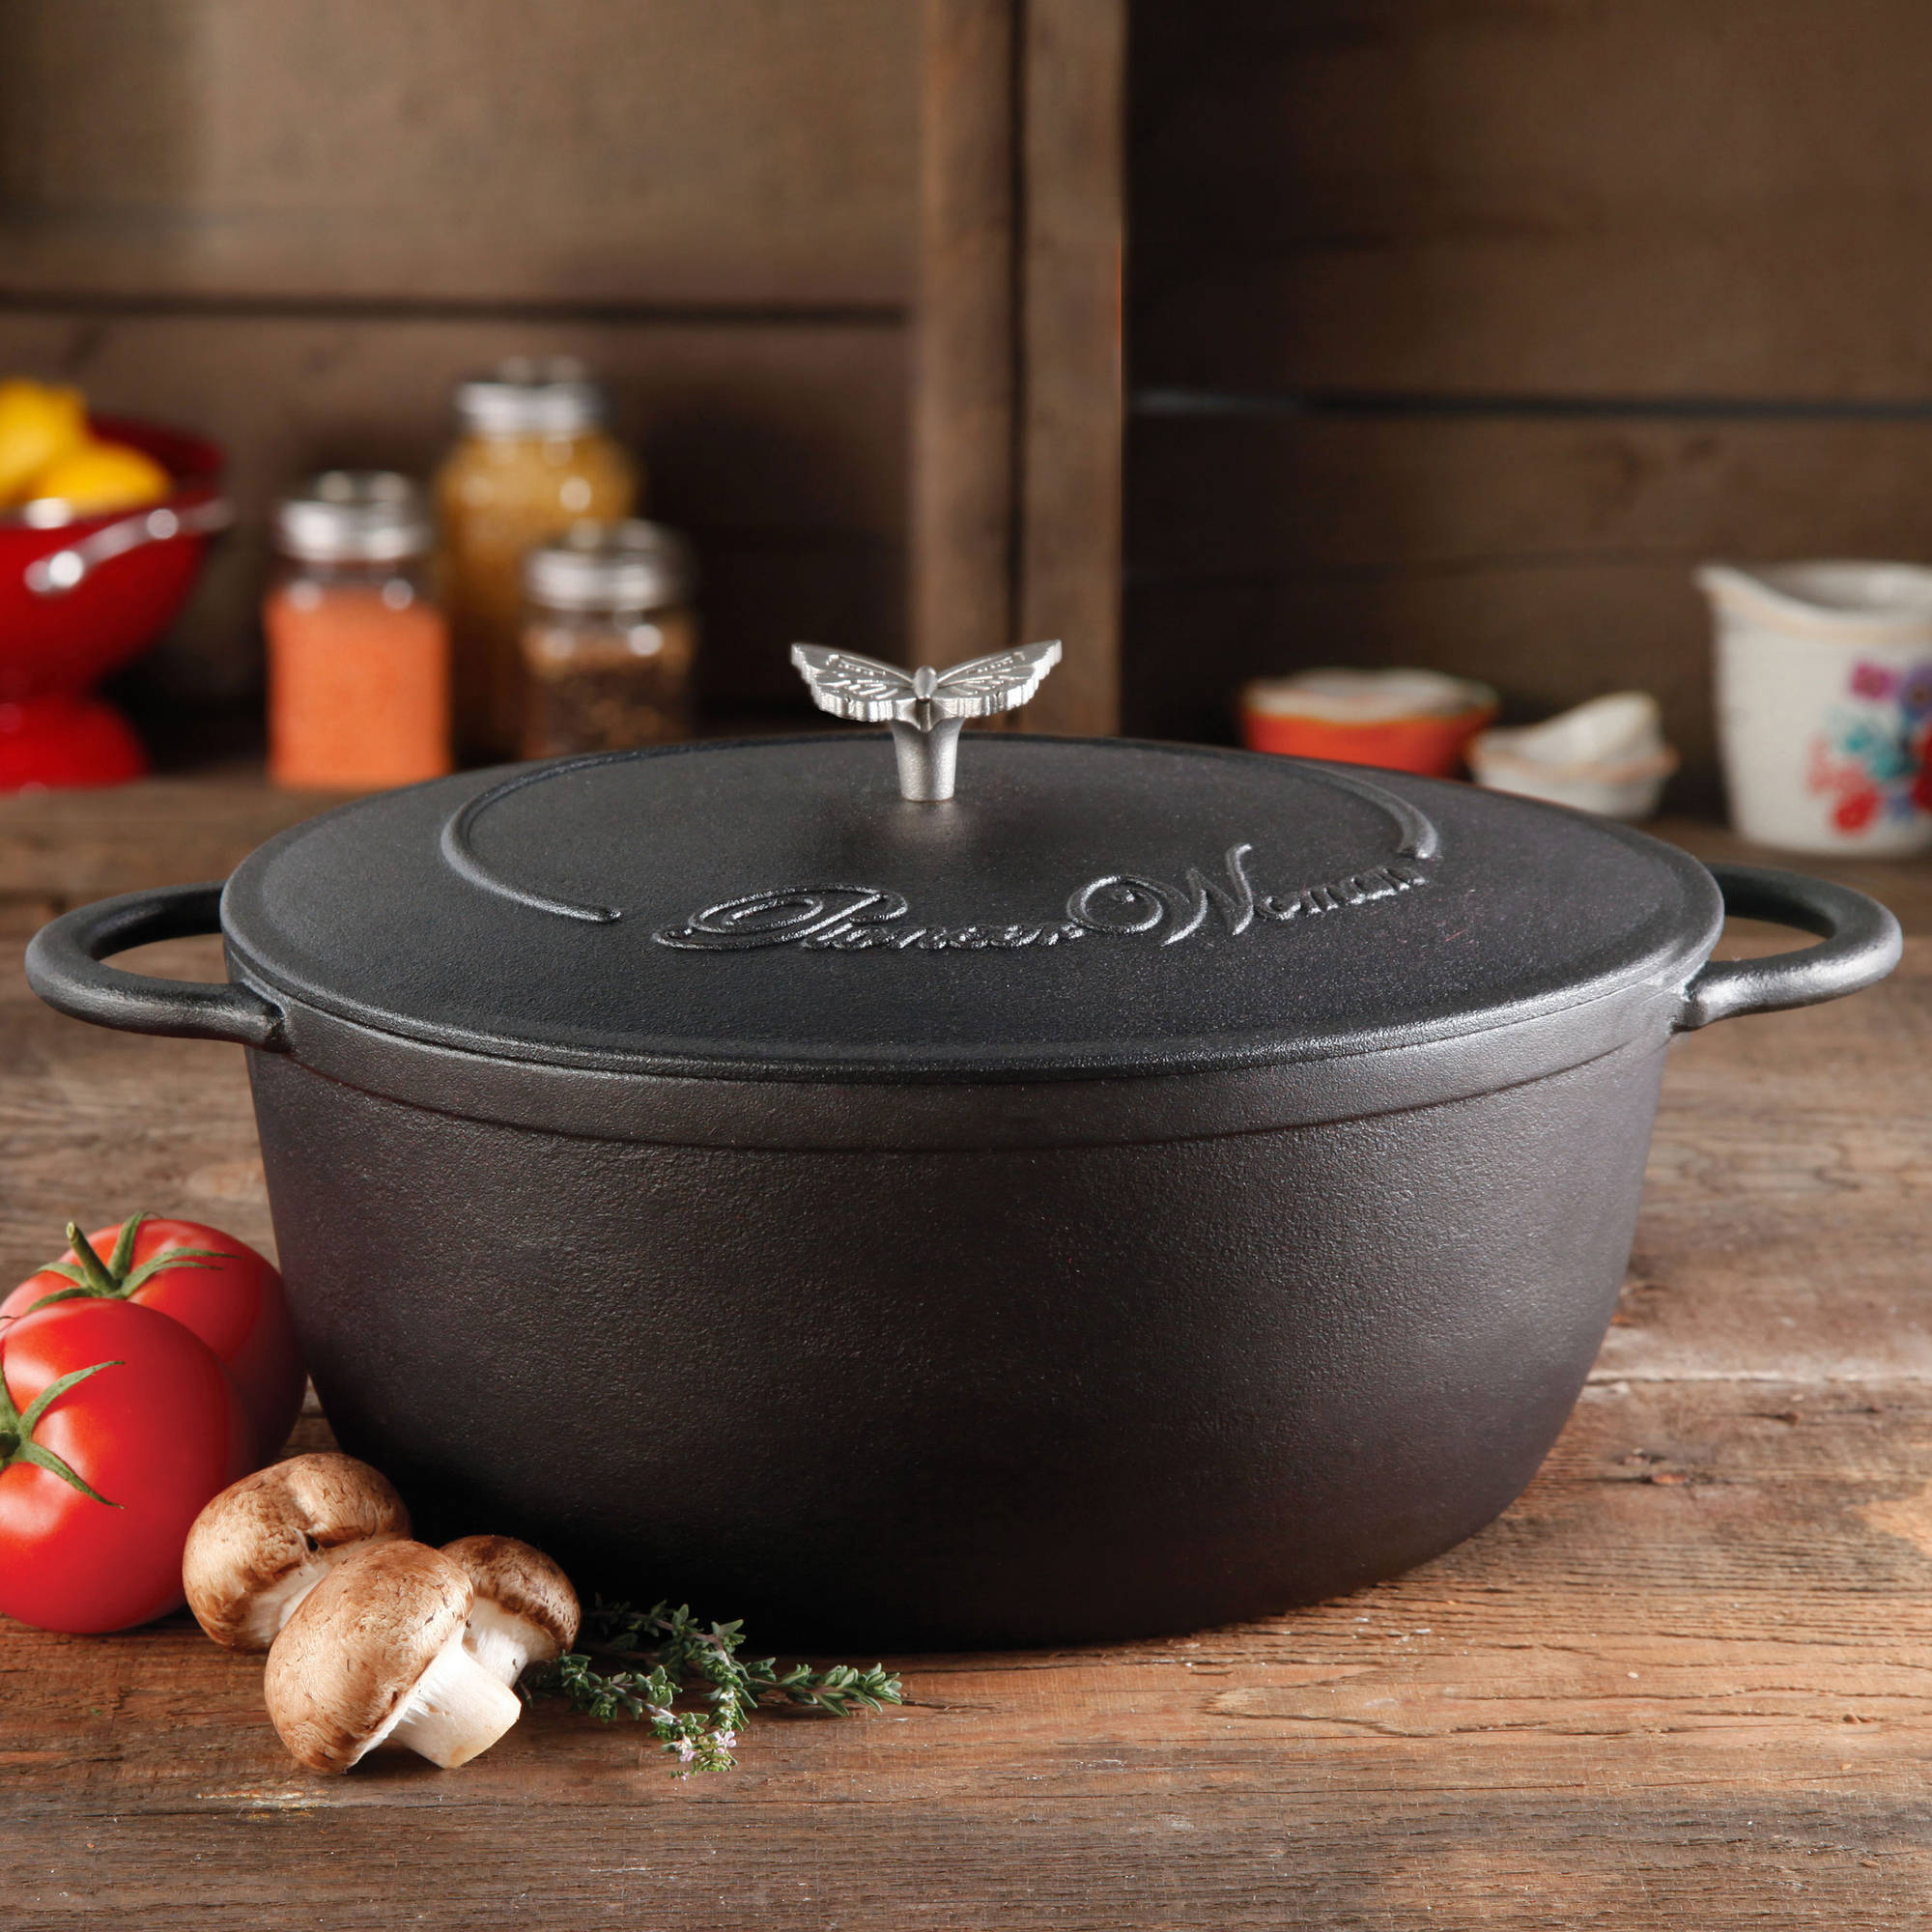 The Pioneer Woman Timeless Cast Iron 7-Quart Dutch Oven with Lid